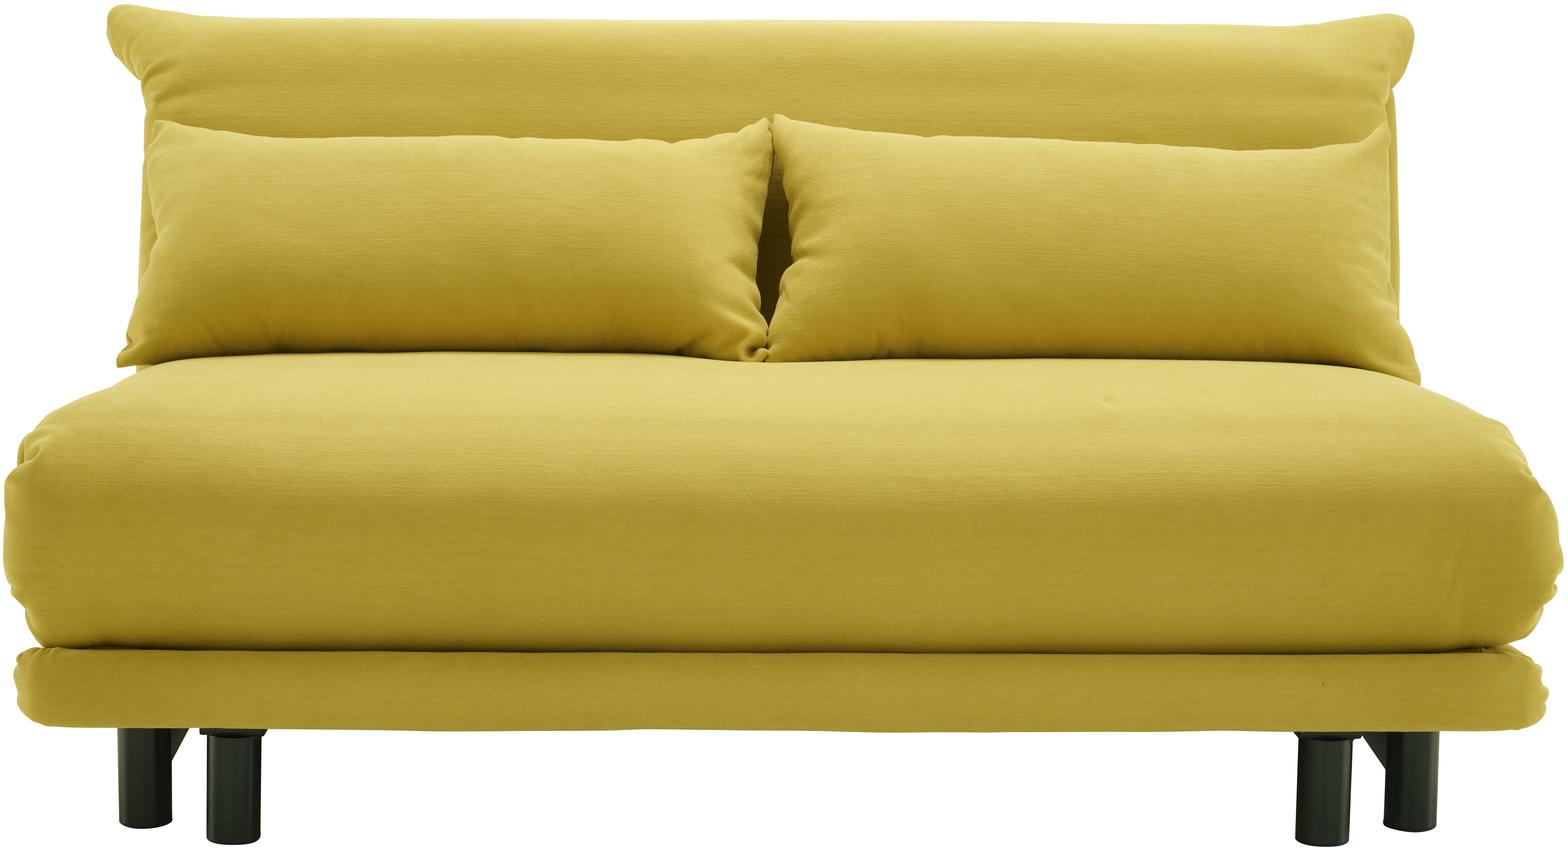 Sofa Beds Ligne Roset Official Site Contemporary High End Furniture